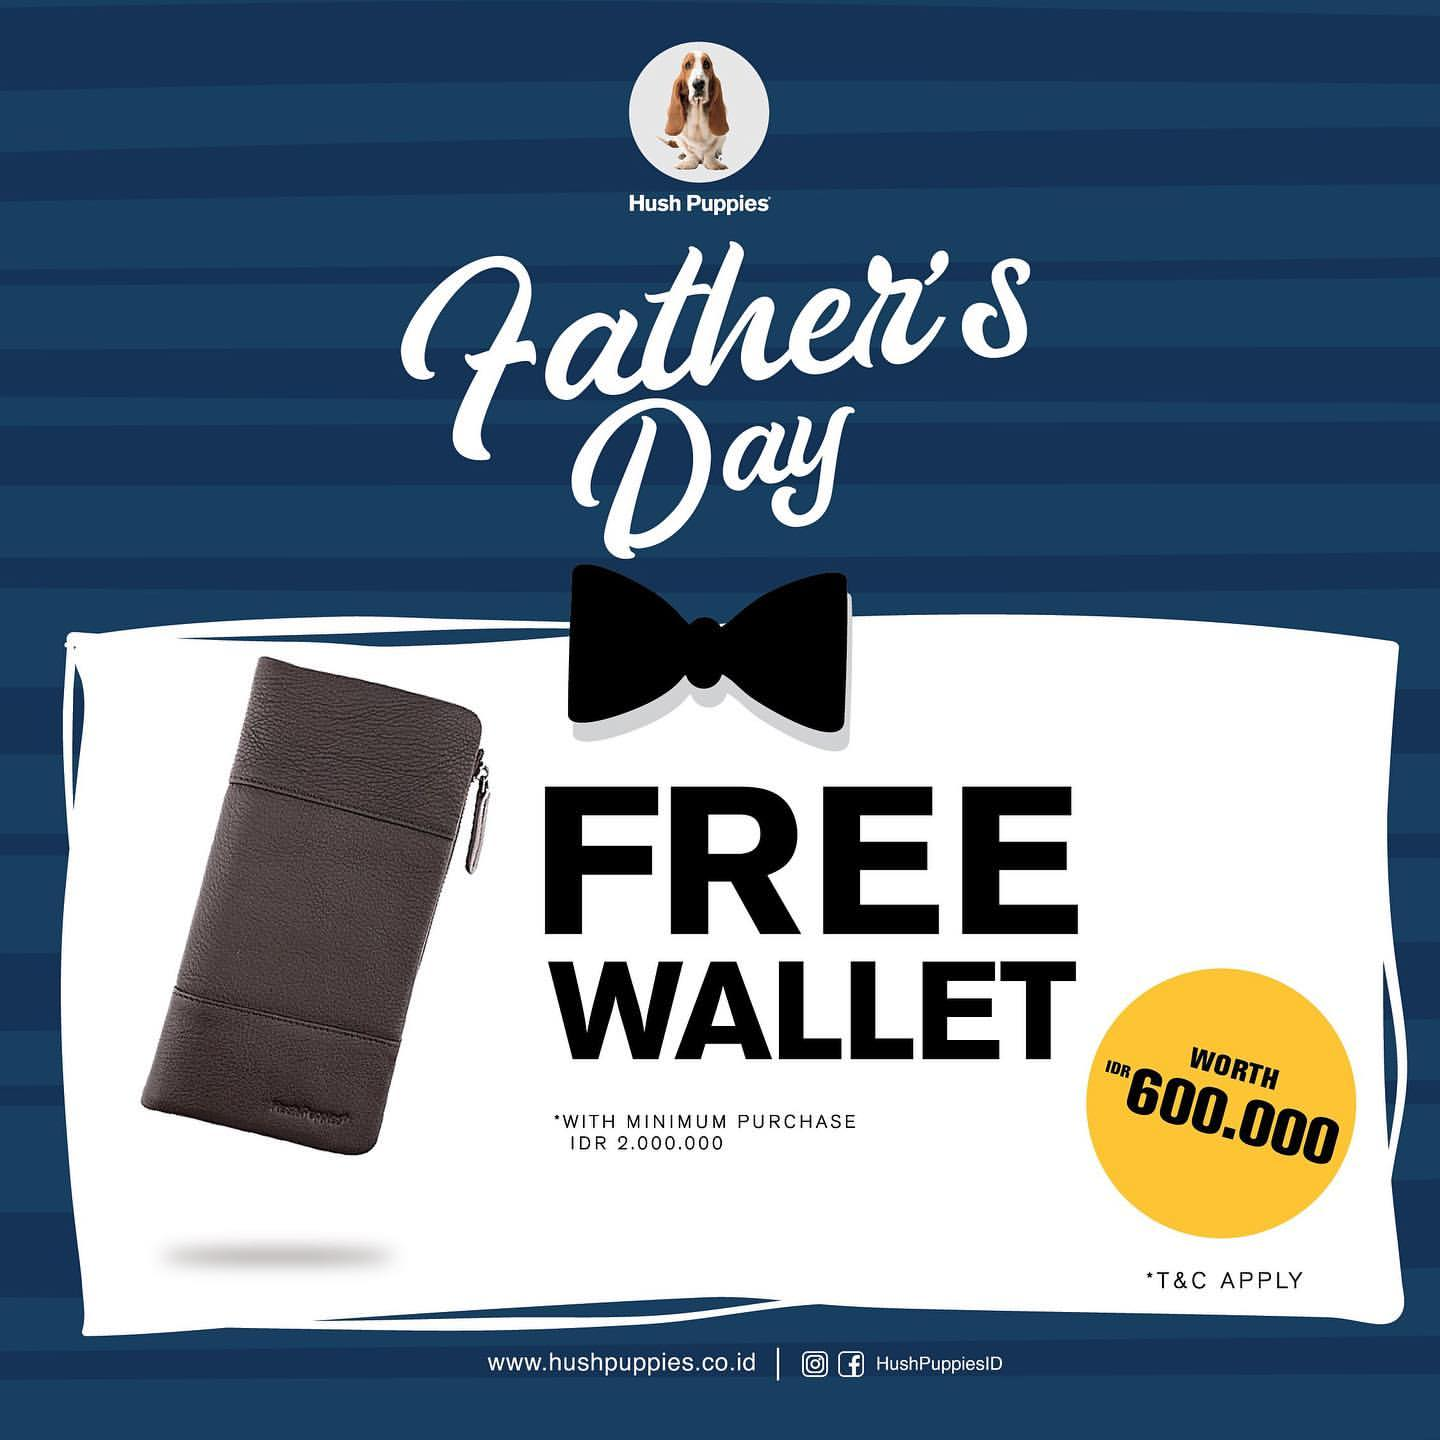 HUSH PUPPIES FATHER'S DAY SPECIAL Free Wallet worth Rp.600.000